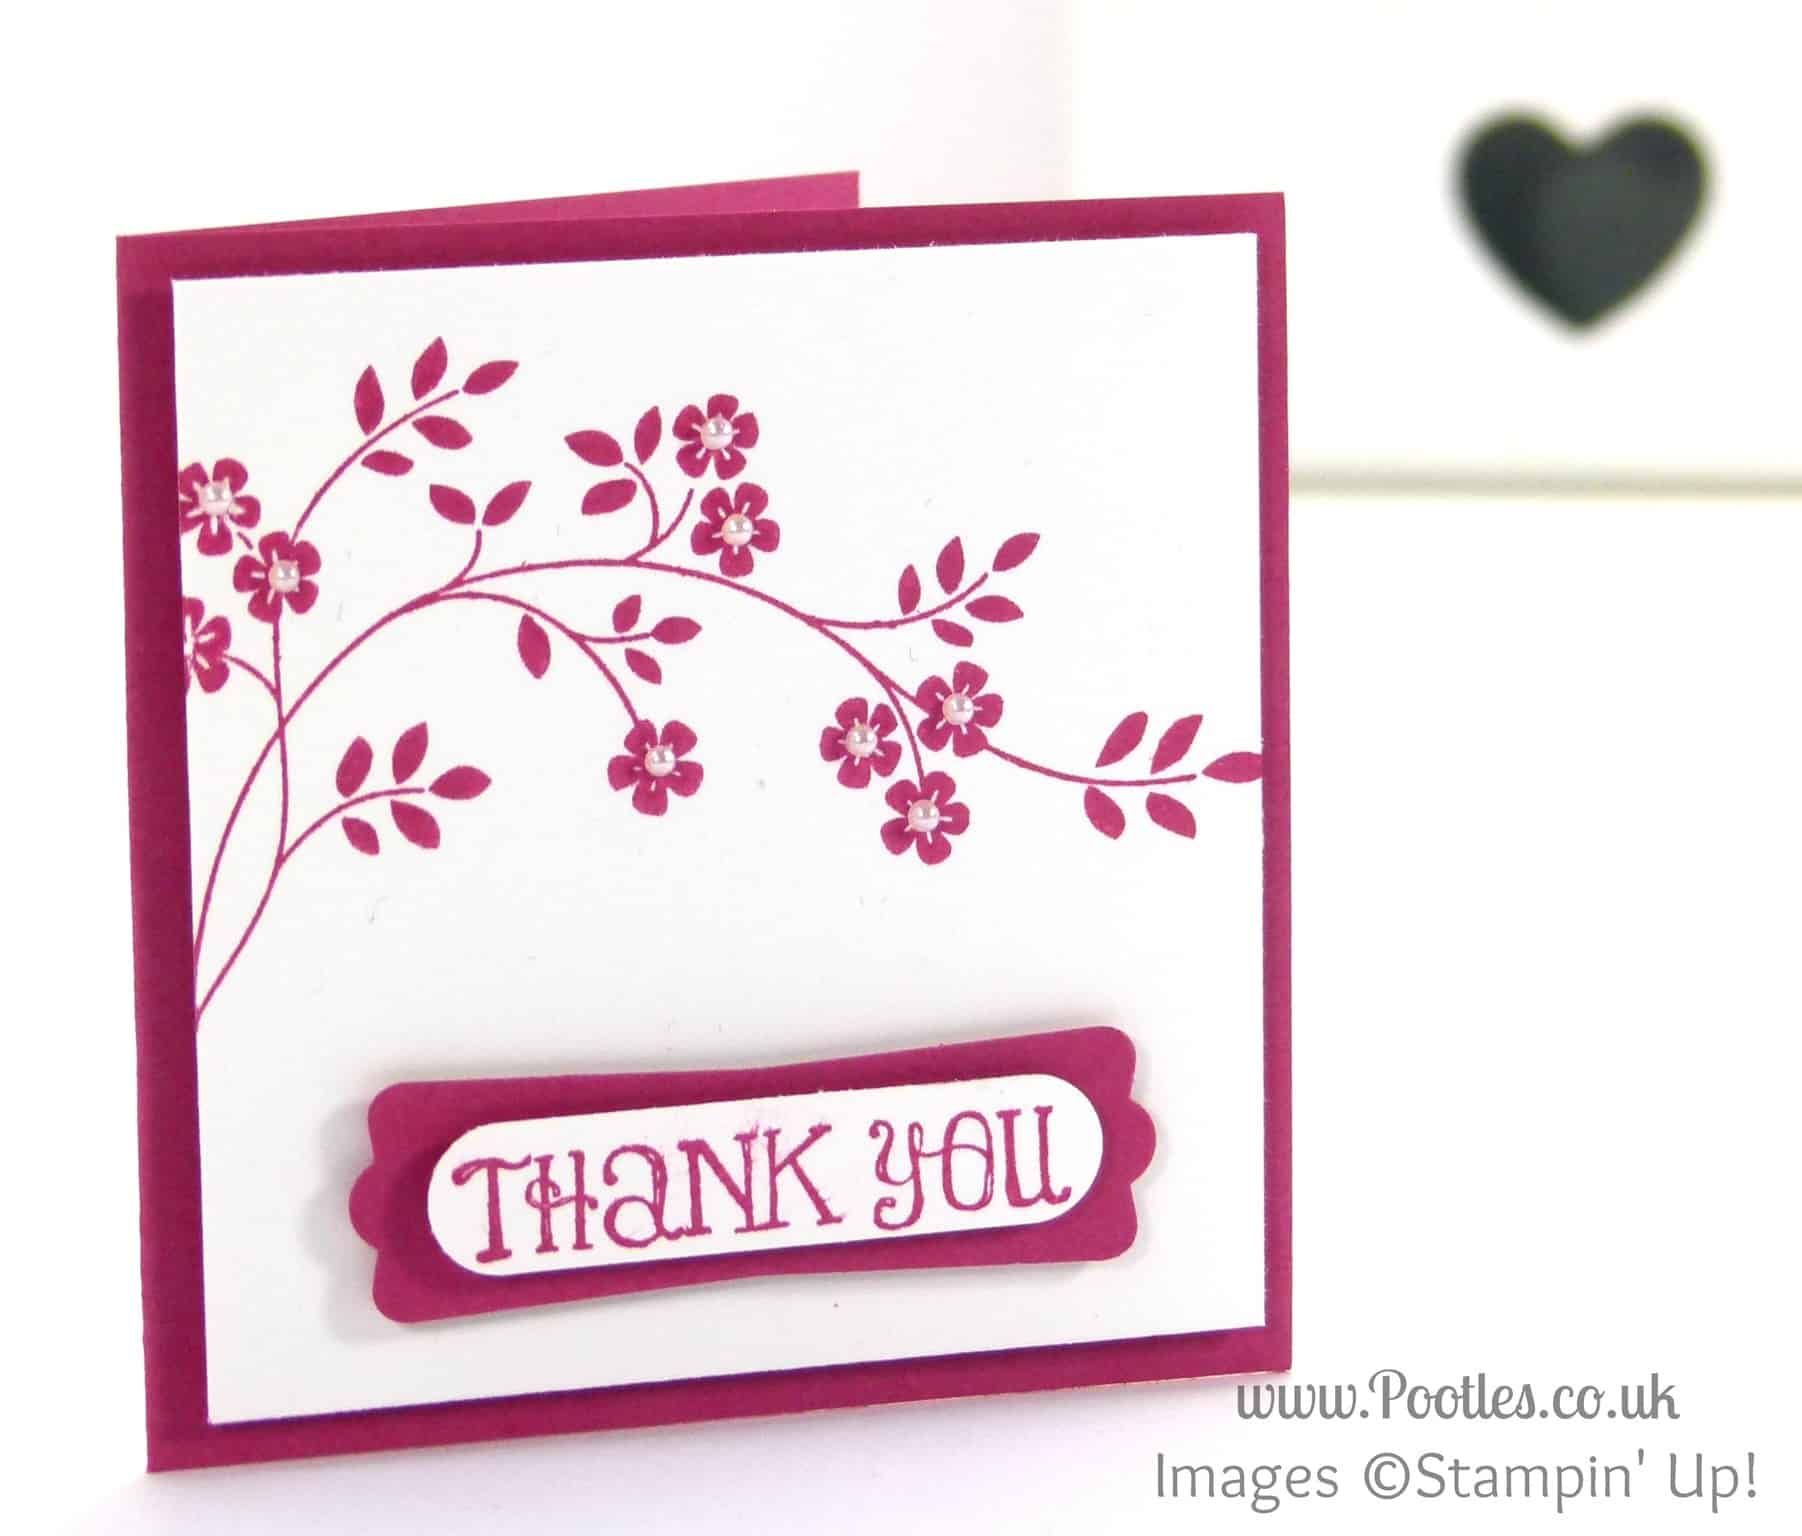 Stampin' Up! UK Demonstrator Pootles - Hopeful Thoughts Thank You Card - To You!